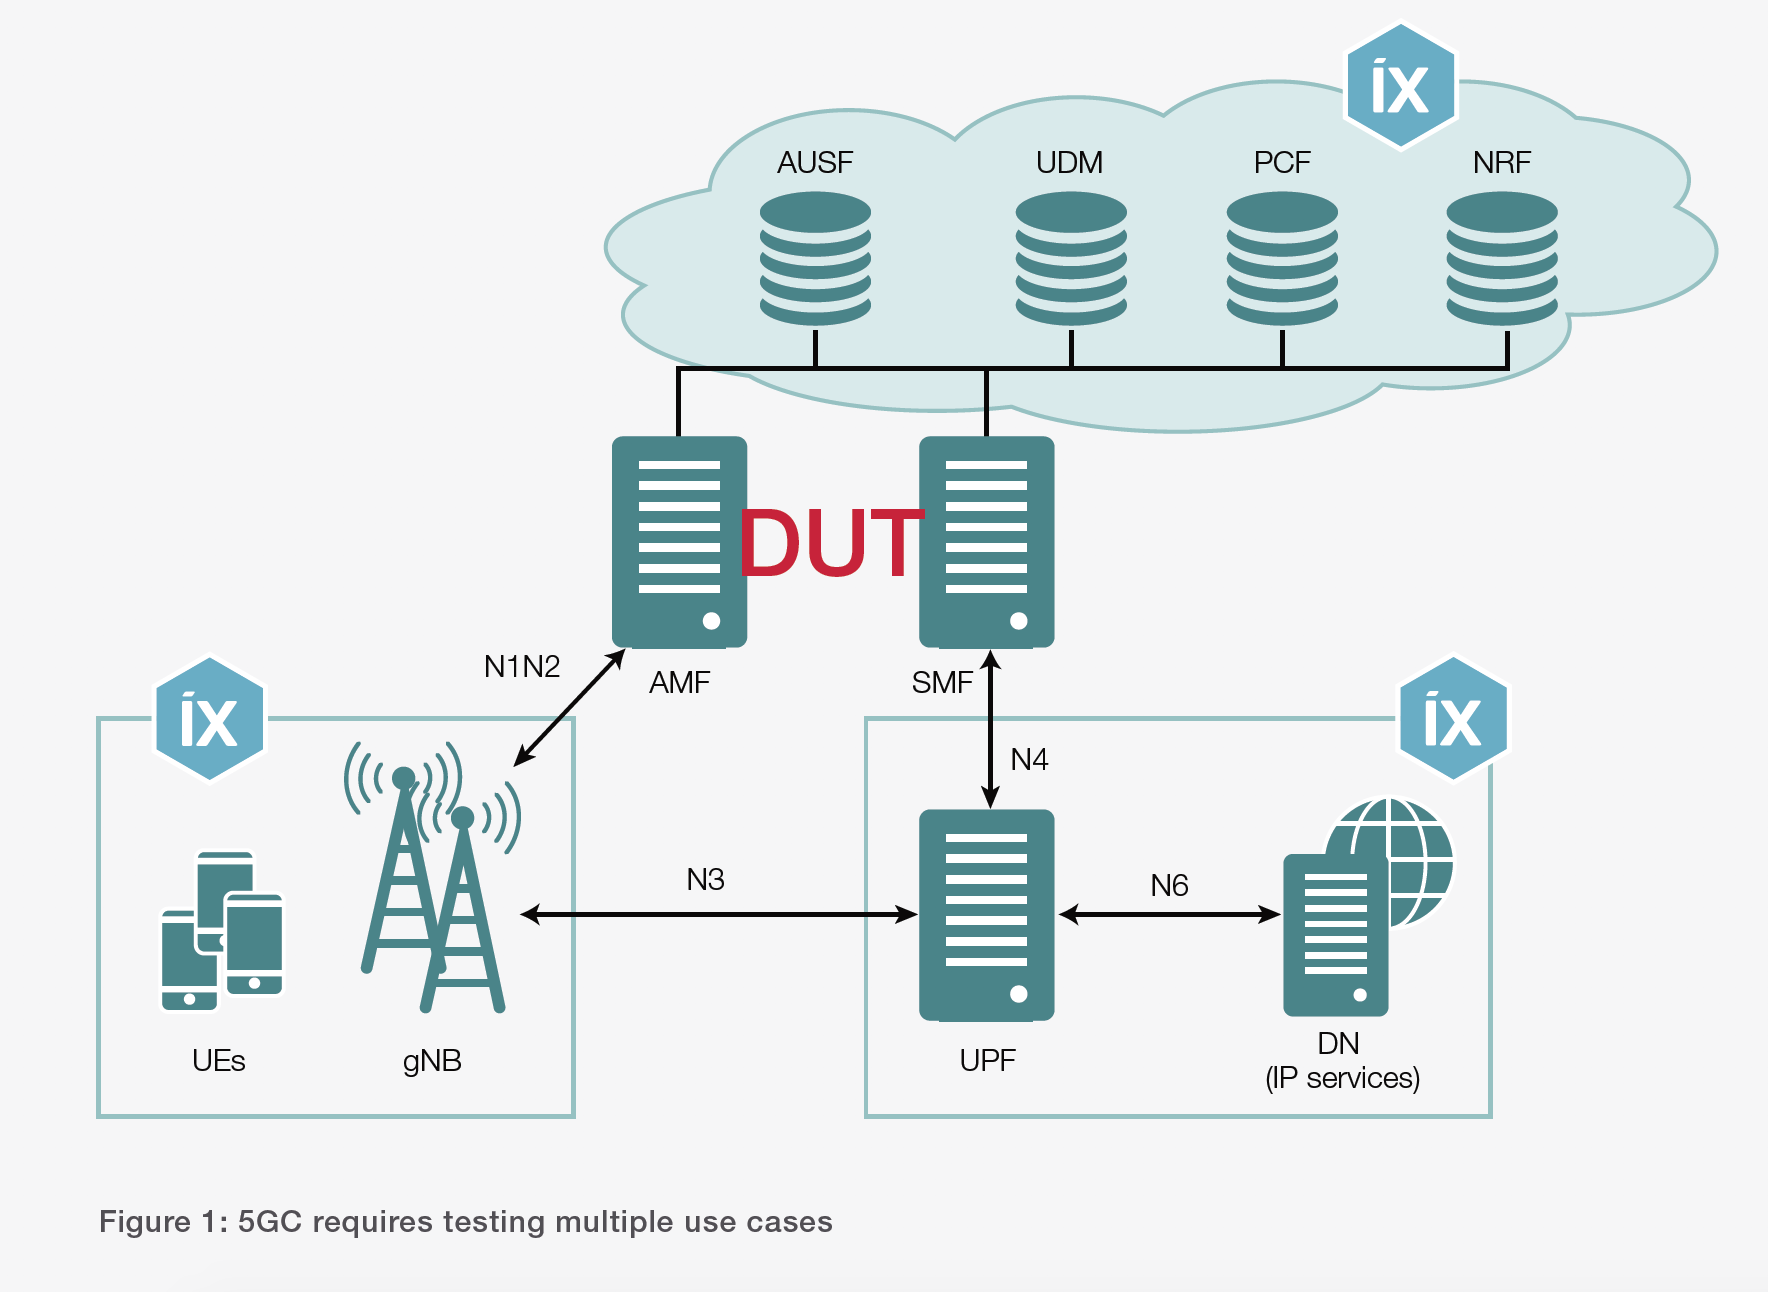 Figure 1: 5GC requires testing multiple use cases